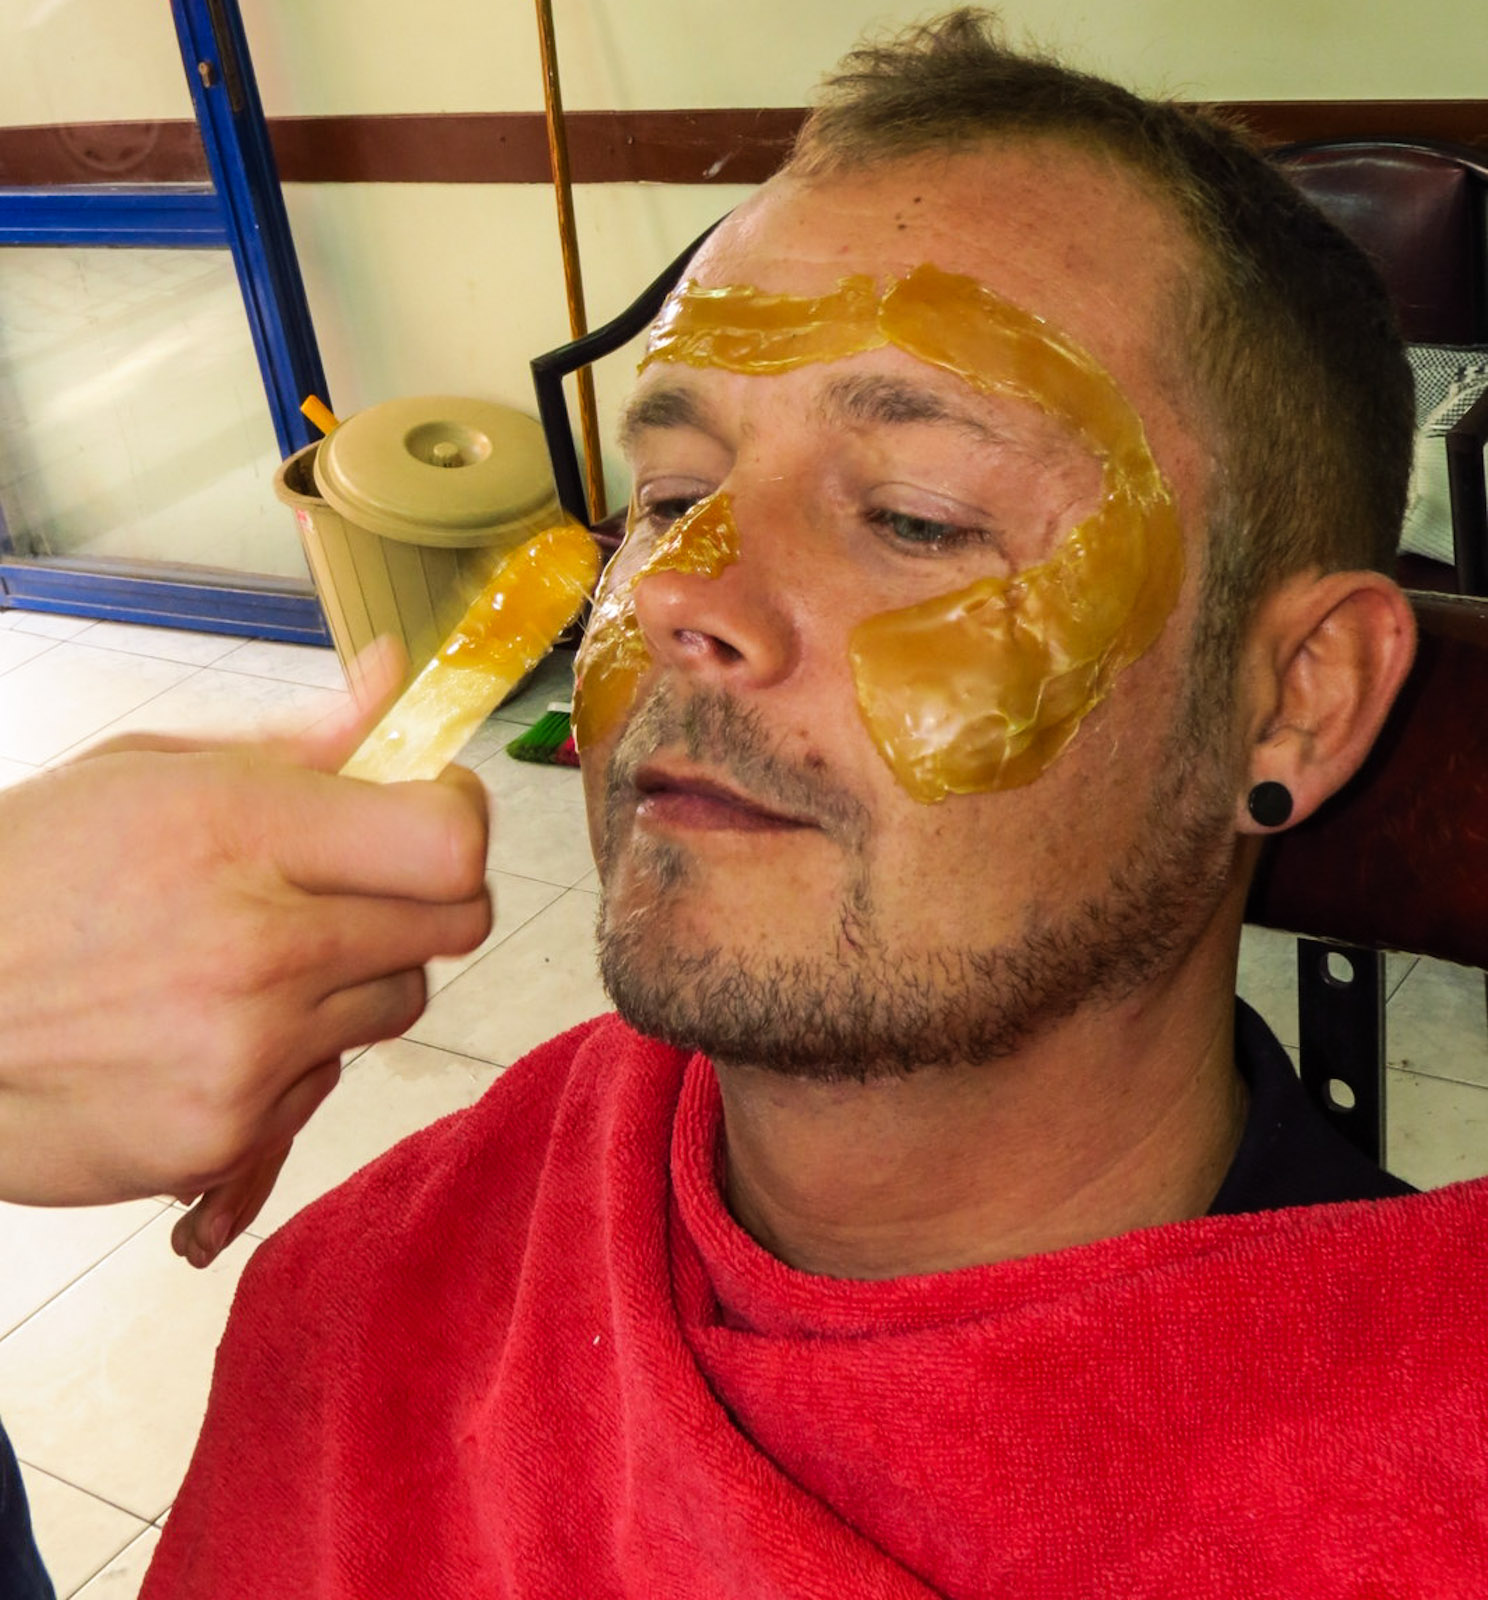 Barber Wax : Male Pampering, Getting a Shave in Turkey : Flashpacking Travel Blog